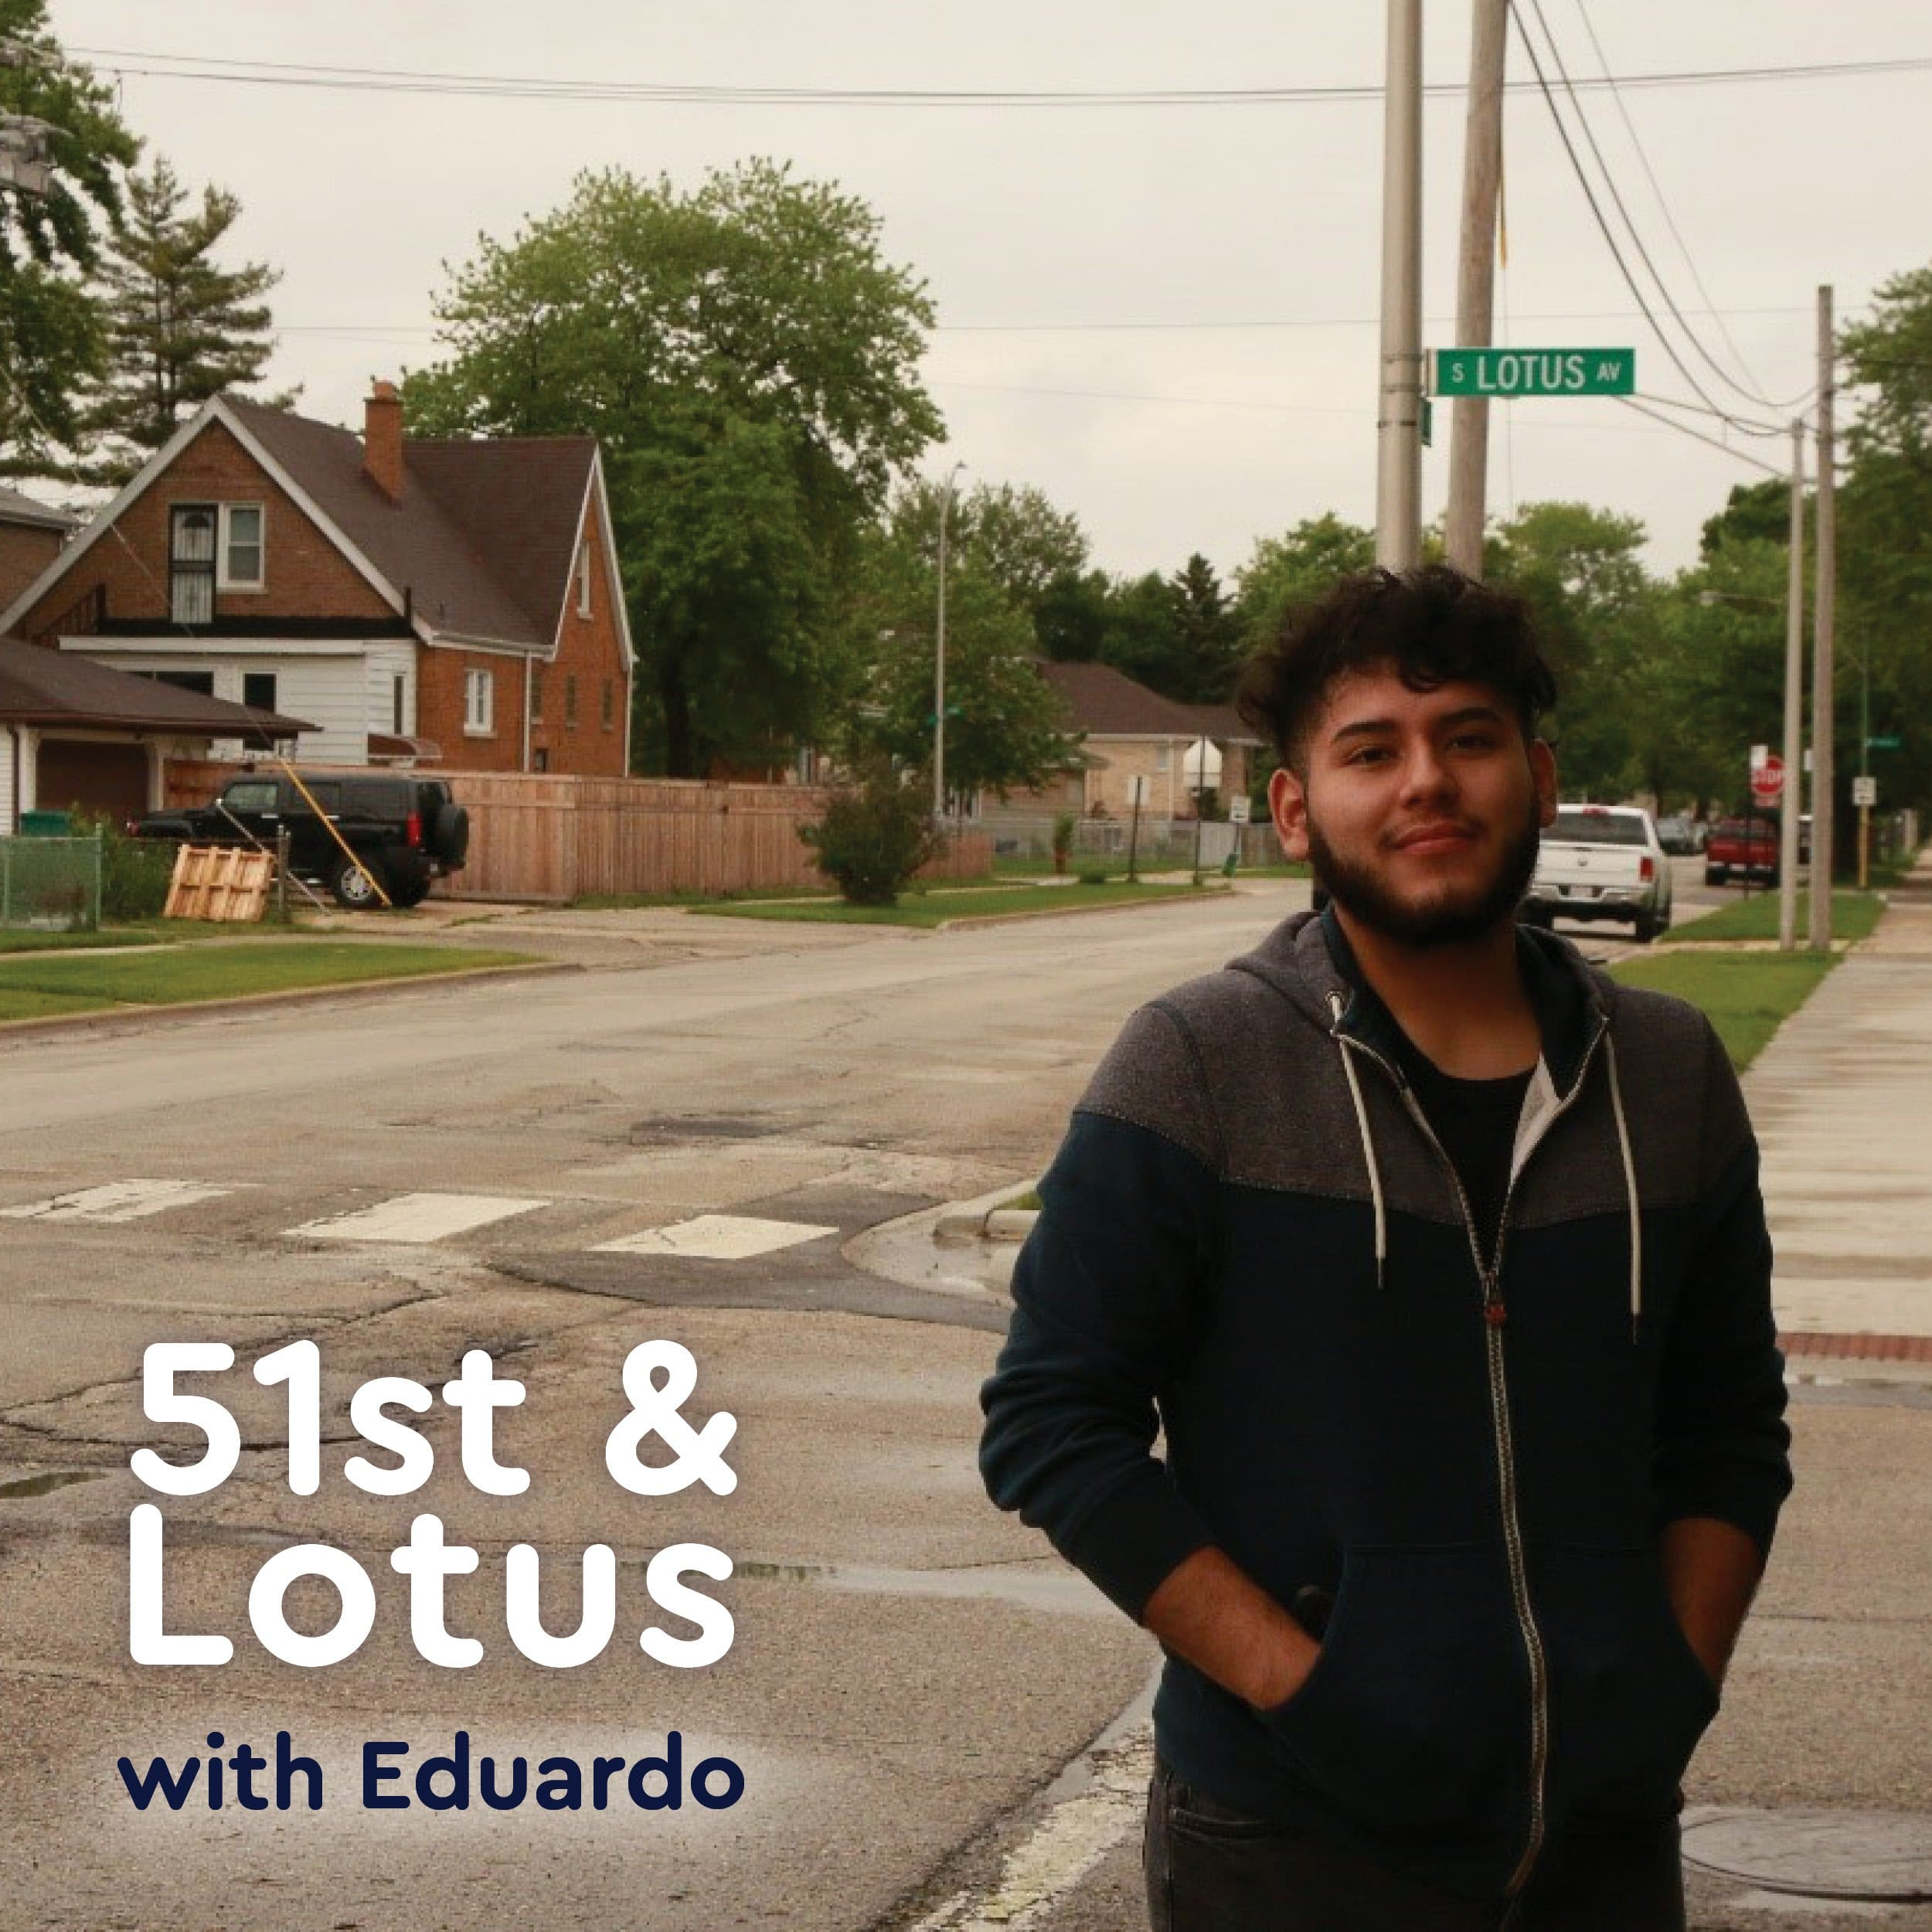 51st & Lotus with Eduardo